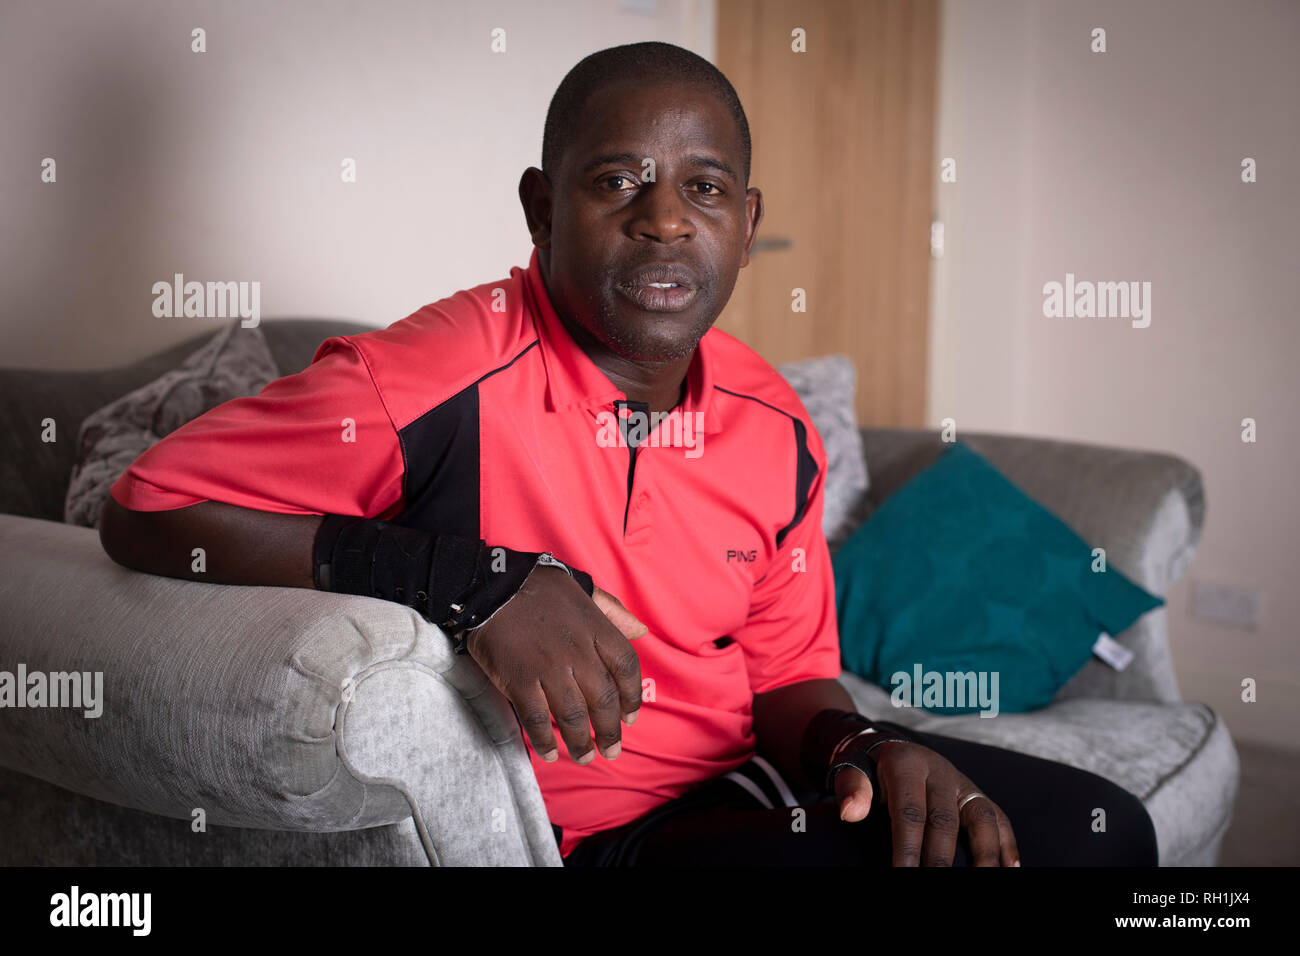 Lenny Johnrose, pictured at his home in Preston, Lancashire.  He was an English former professional football player who during his career played for several clubs including Burnley, Bury and Swansea City. In March 2017, Penrose was diagnosed with motor neurone disease. - Stock Image